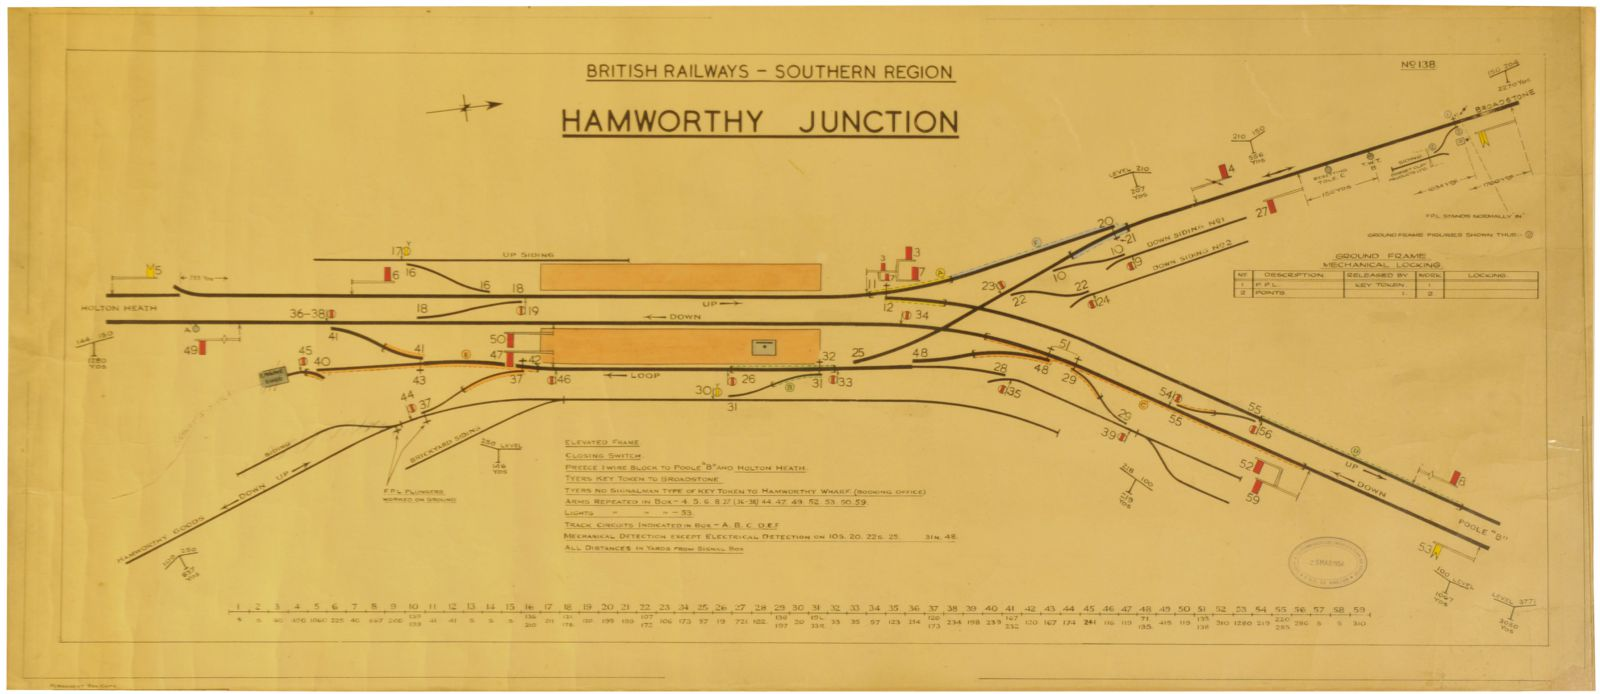 Lot 35 - Signal Box Diagrams, Hamworthy Junction: A BR(S) signal box diagram, HAMWORTHY JUNCTION, 1954,